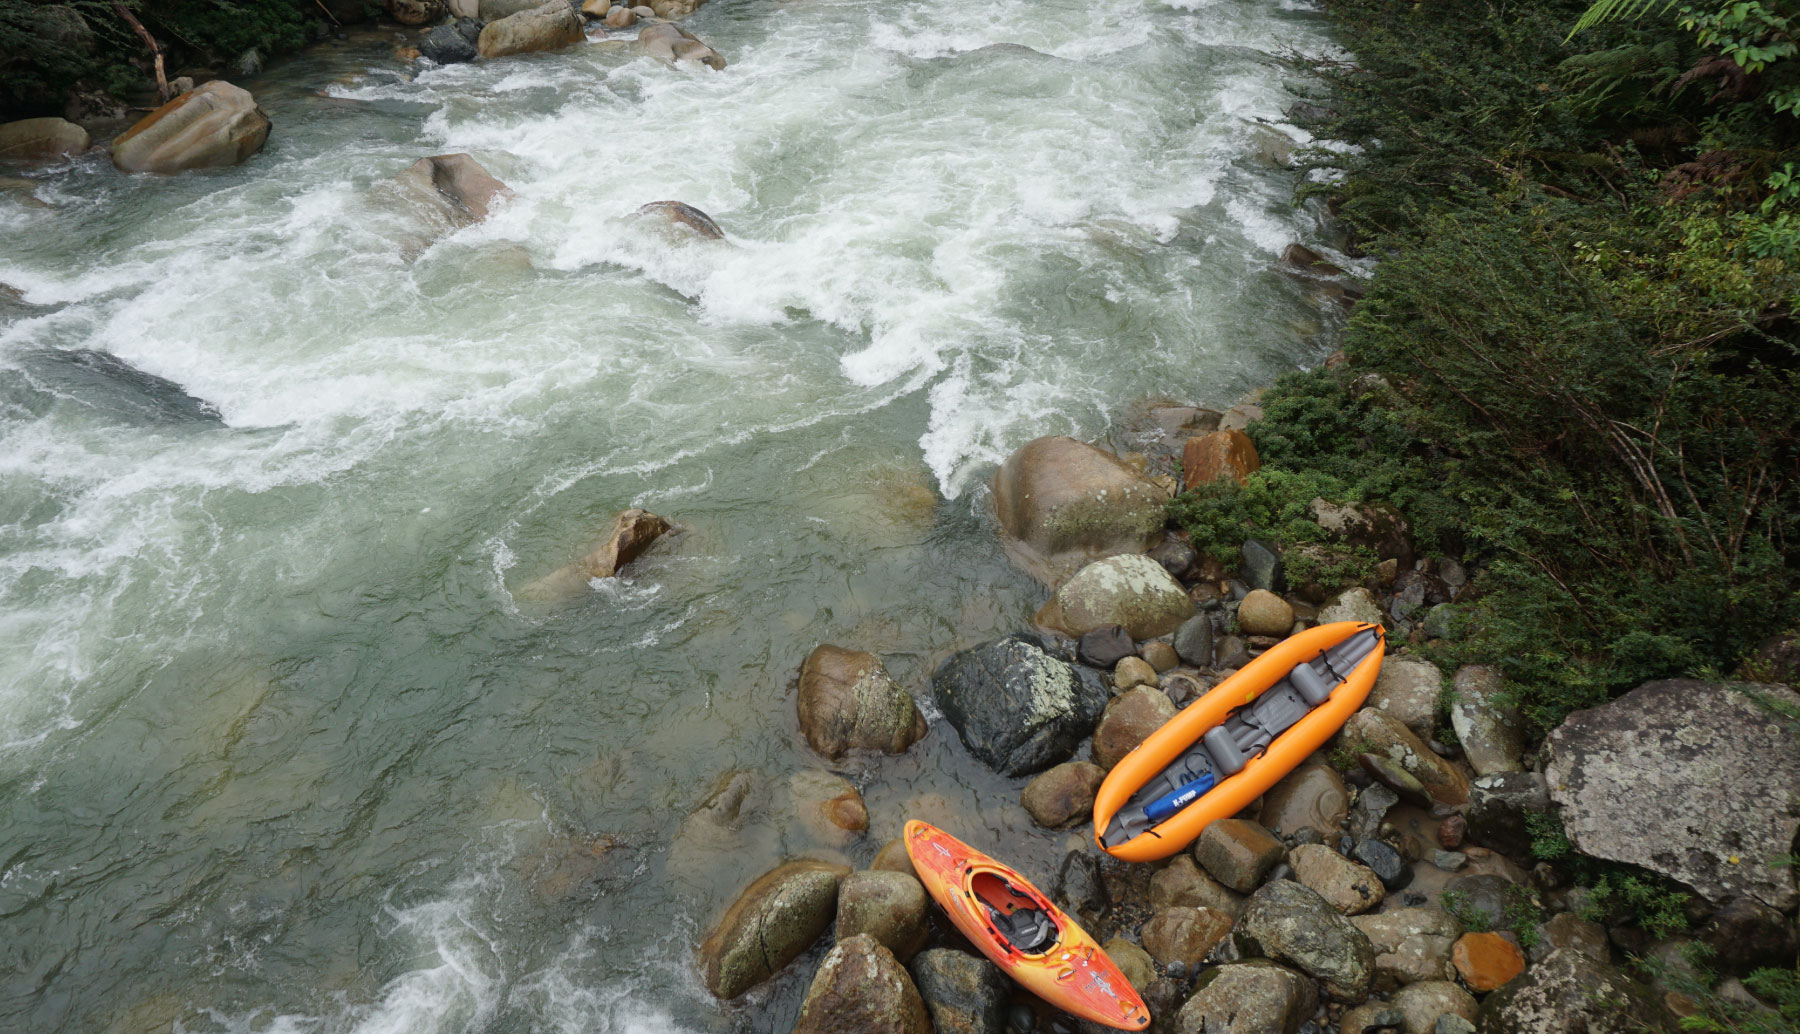 Duckie and kayak in the shore of the river